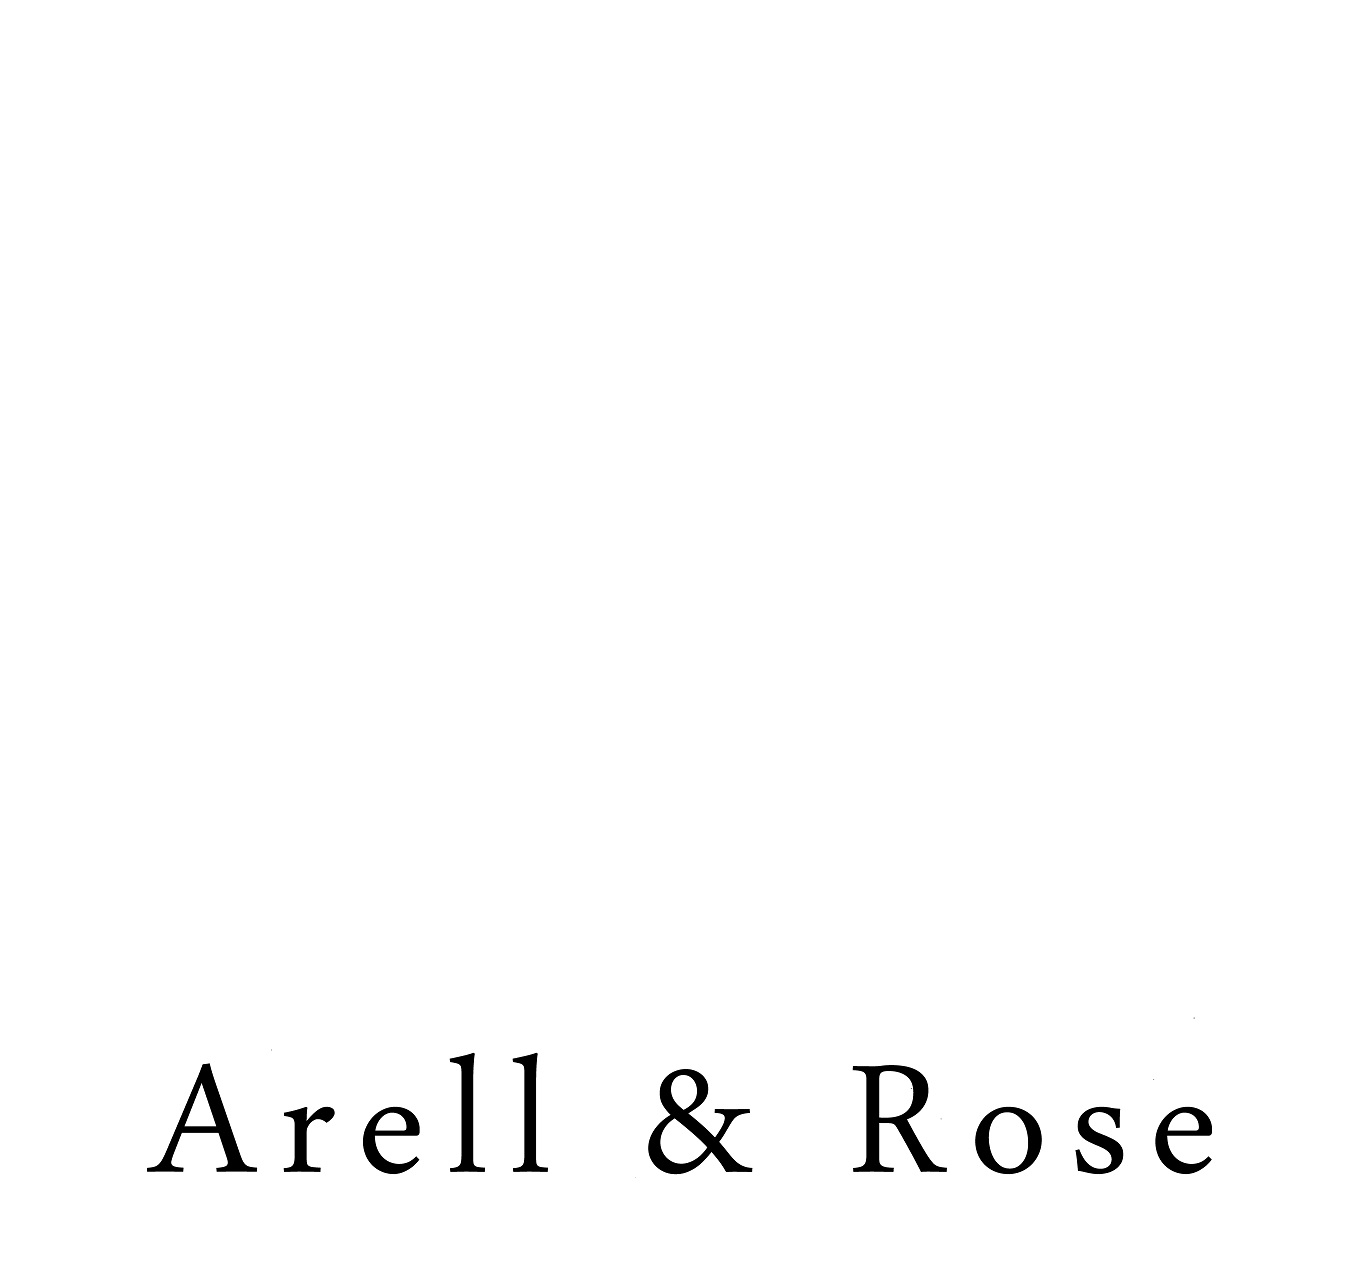 Arell & Rose